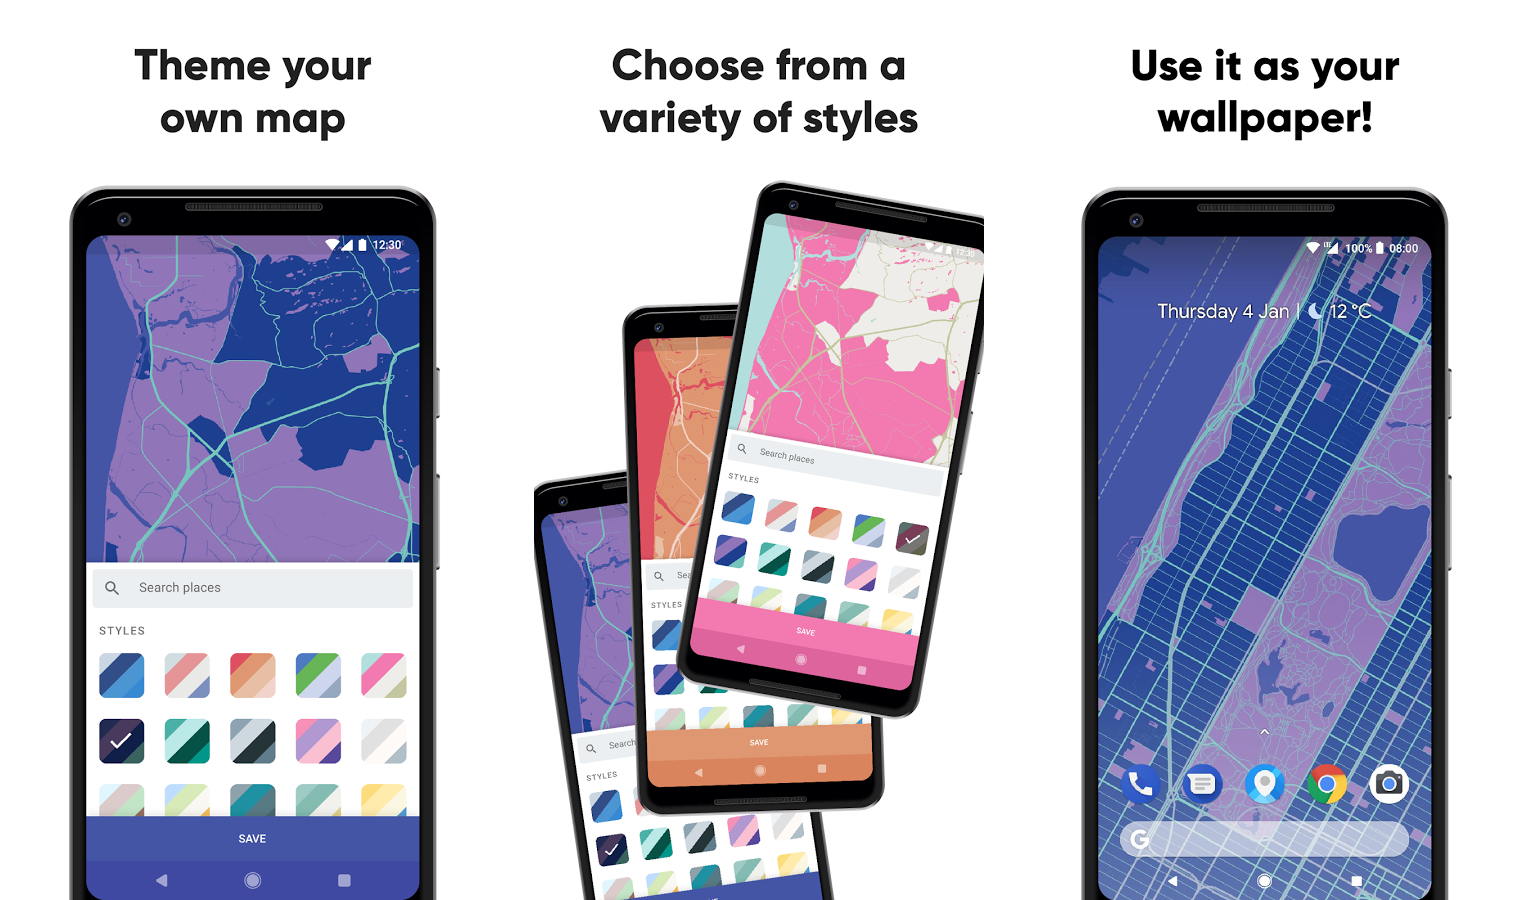 Mapapers is a wallpaper app that allows you to create a stylized version of maps. Simply navigate to anywhere on a map, pan, zoom, and tilt to get the ...